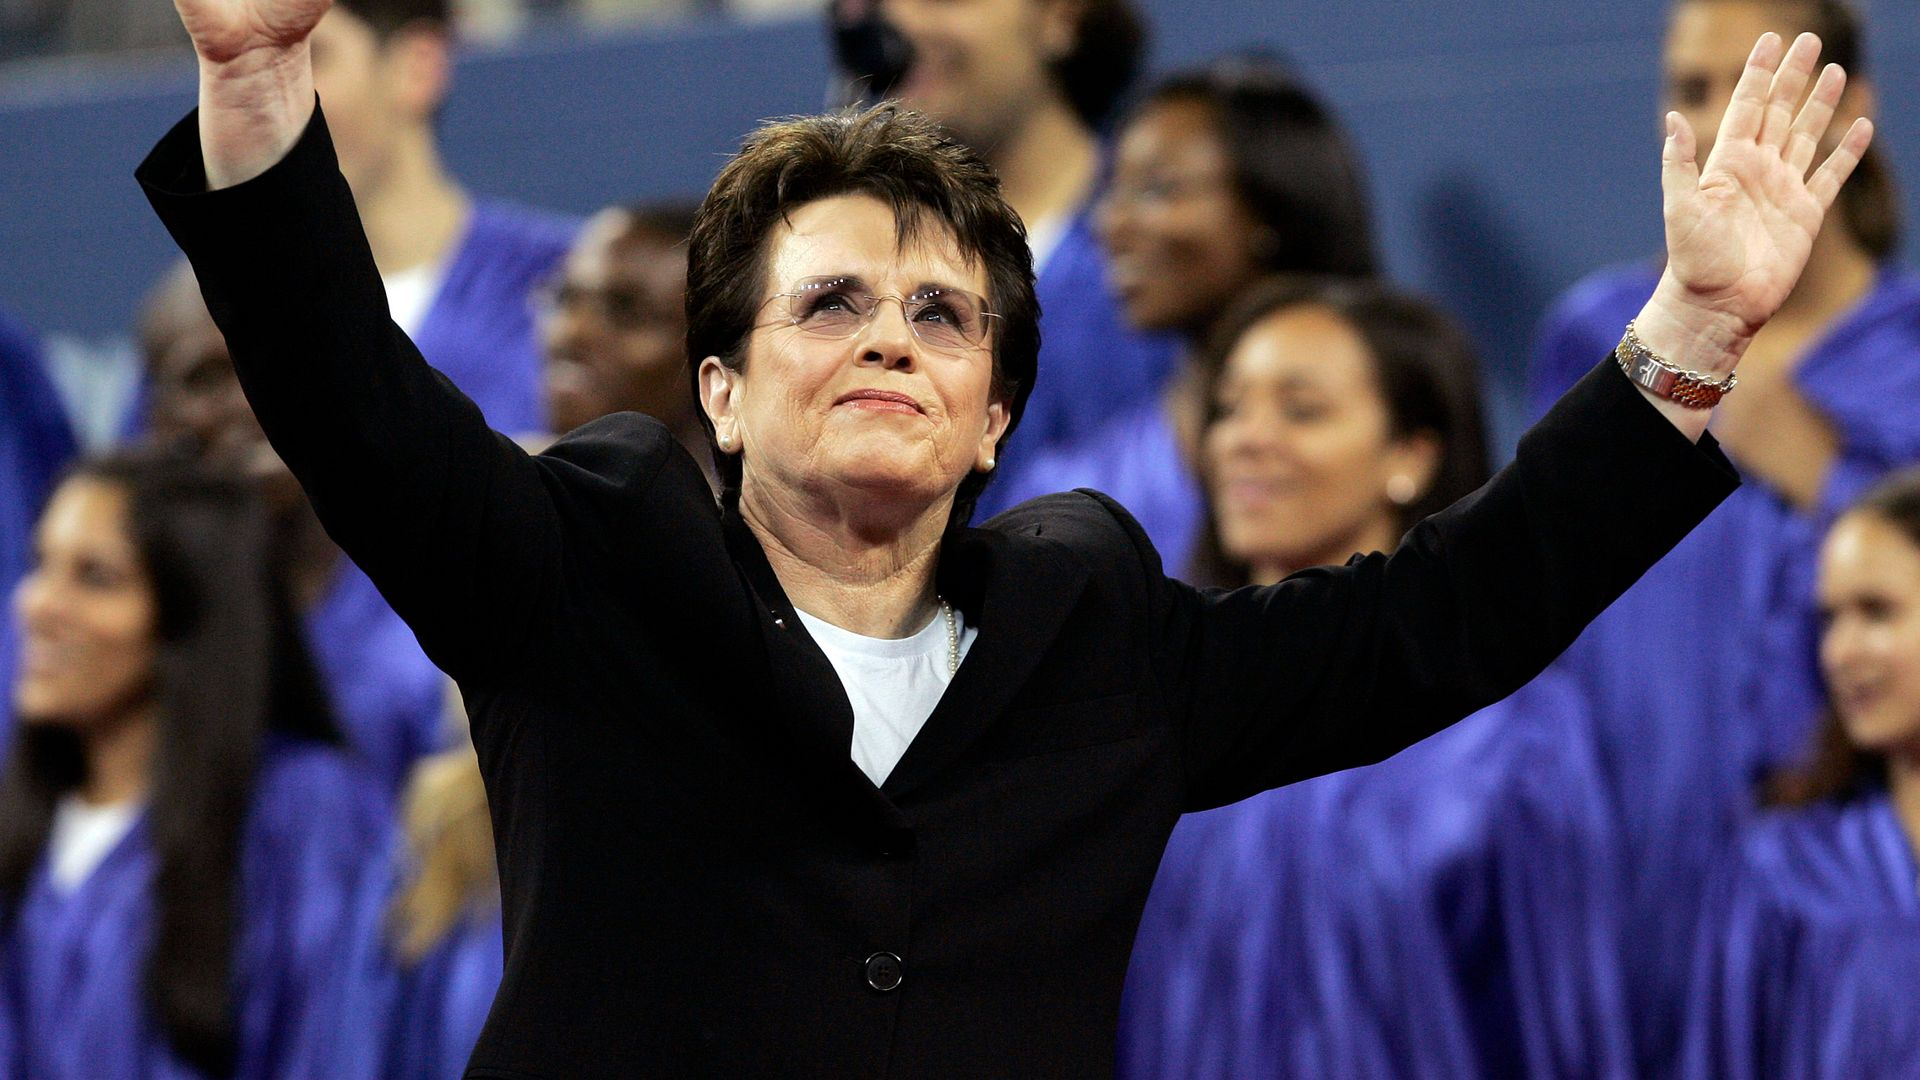 Billie Jean King: 'Show up, stand up and speak up'